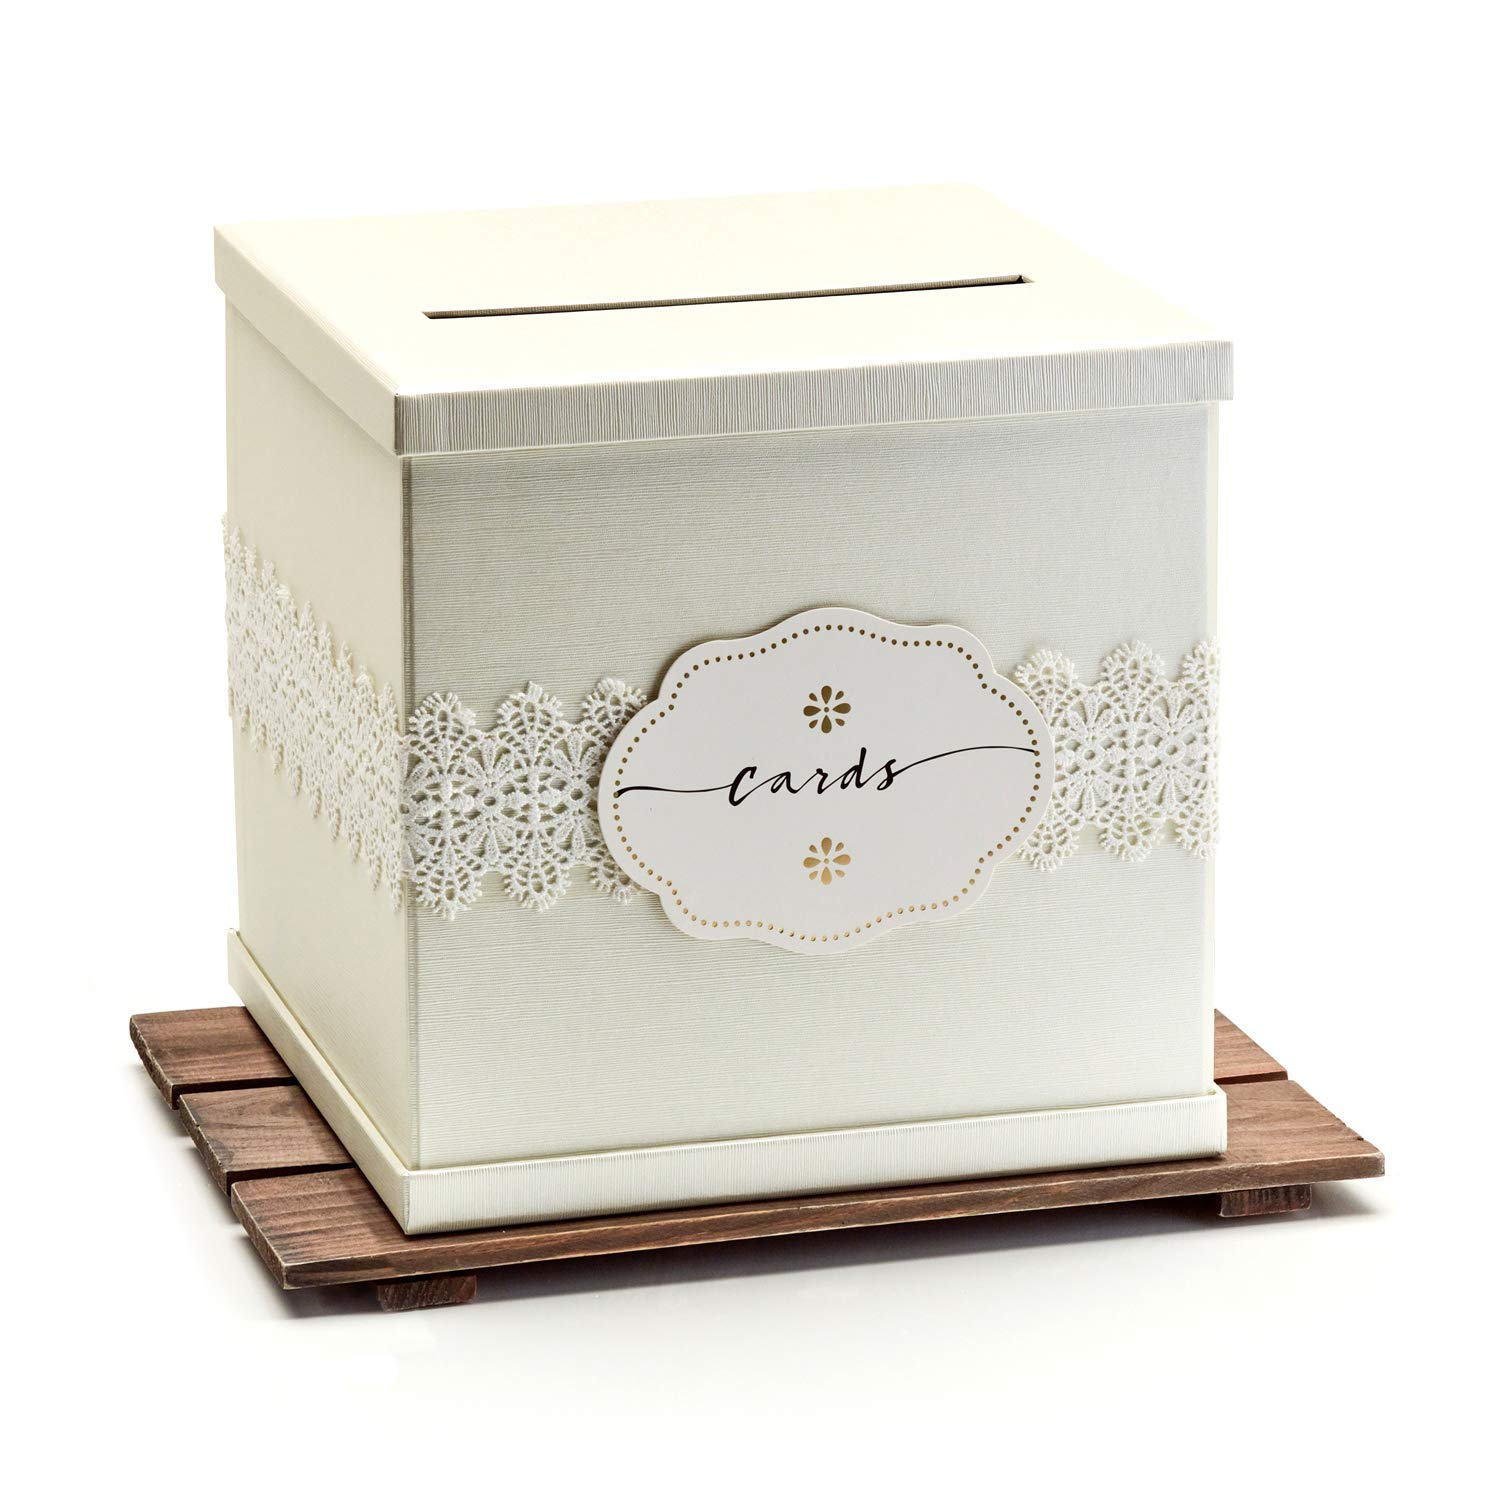 Hayley Cherie - Ivory Gift Card Box with White Lace and Cards Label - Ivory Textured Finish - Large Size 10'' x 10'' - Perfect for Weddings, Baby Showers, Birthdays, Graduation